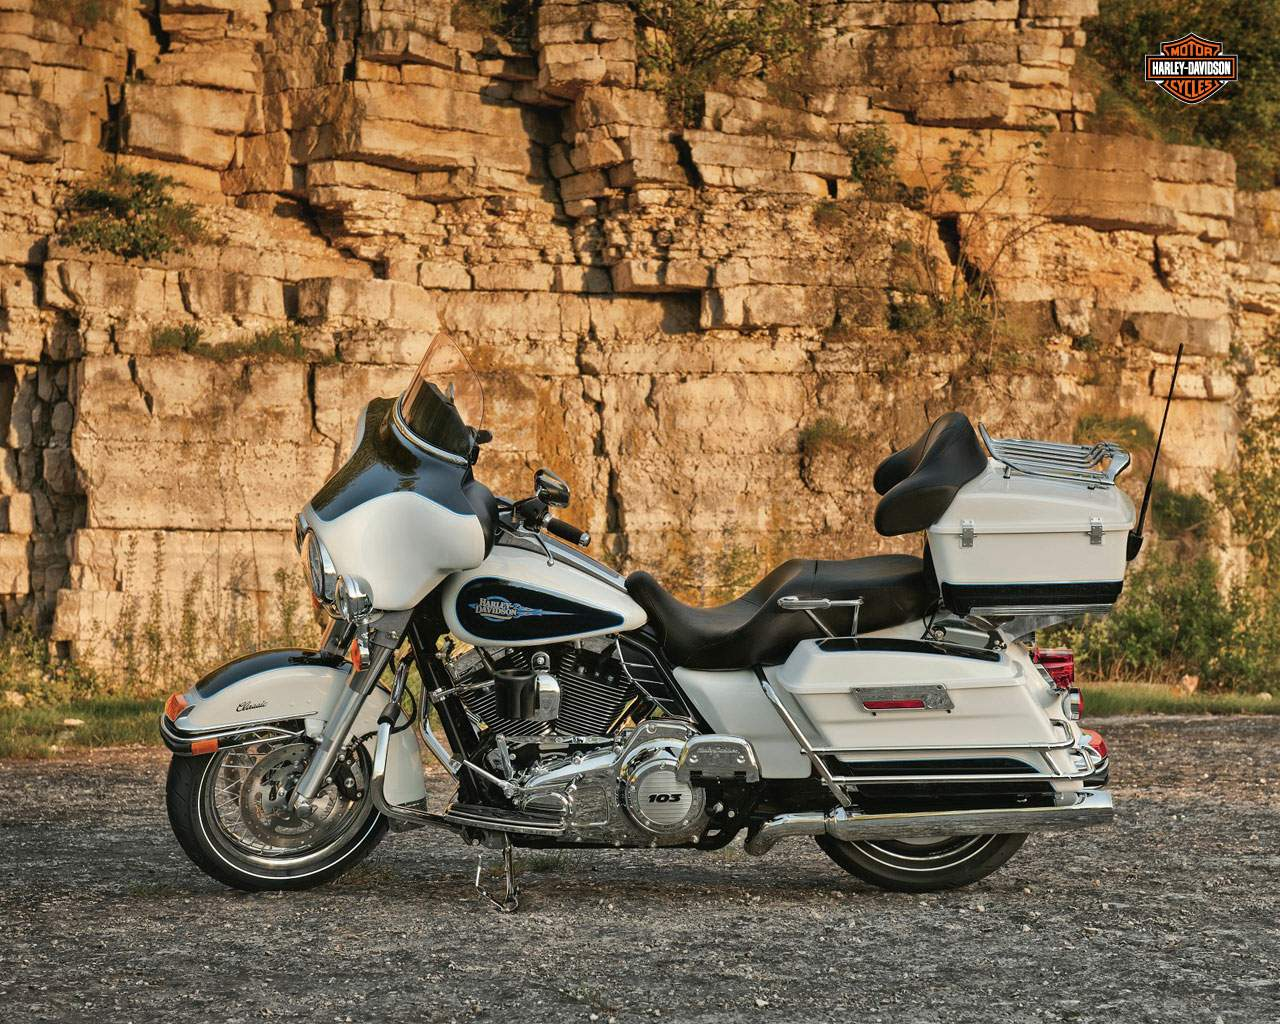 Harley-Davidson FLHTC Electra Glide Classic 2013 pics #19894